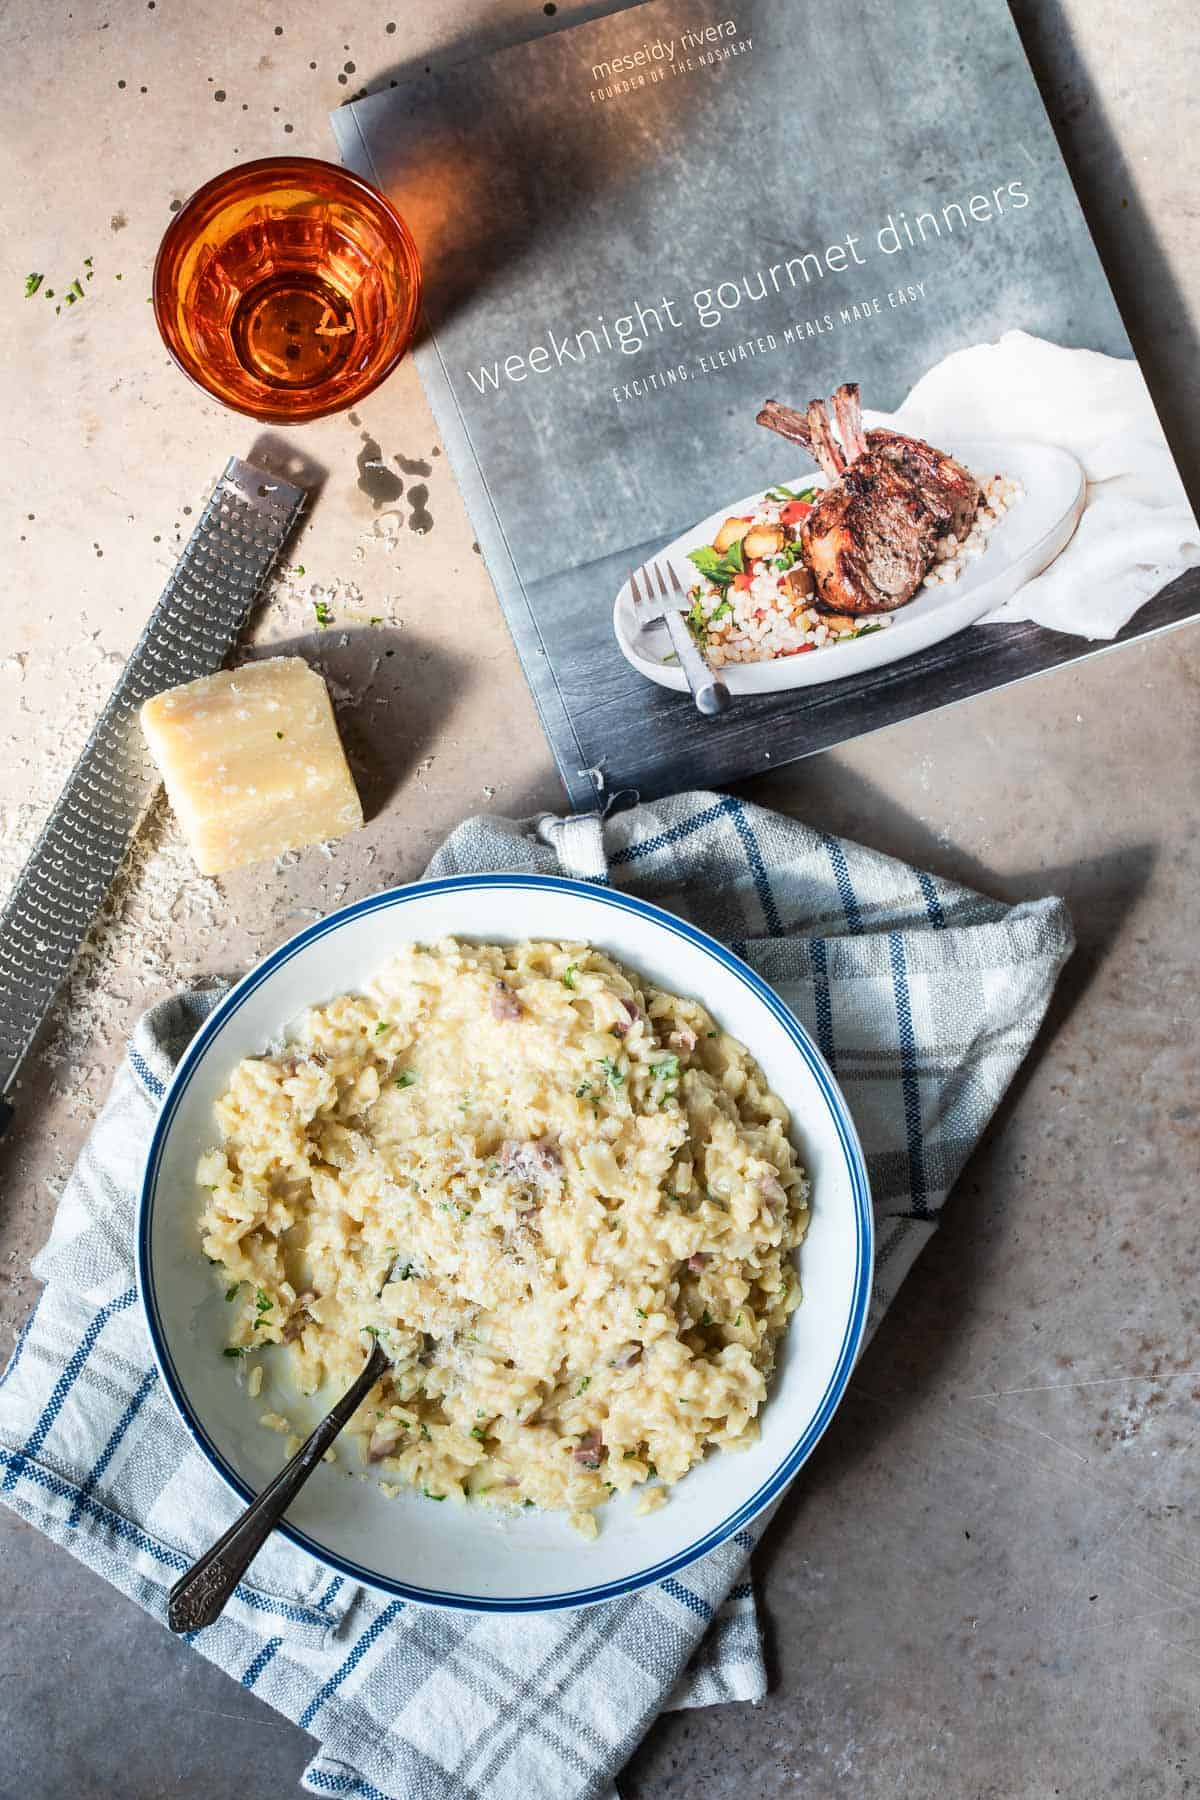 Instant pot risotto with a cook book on a board